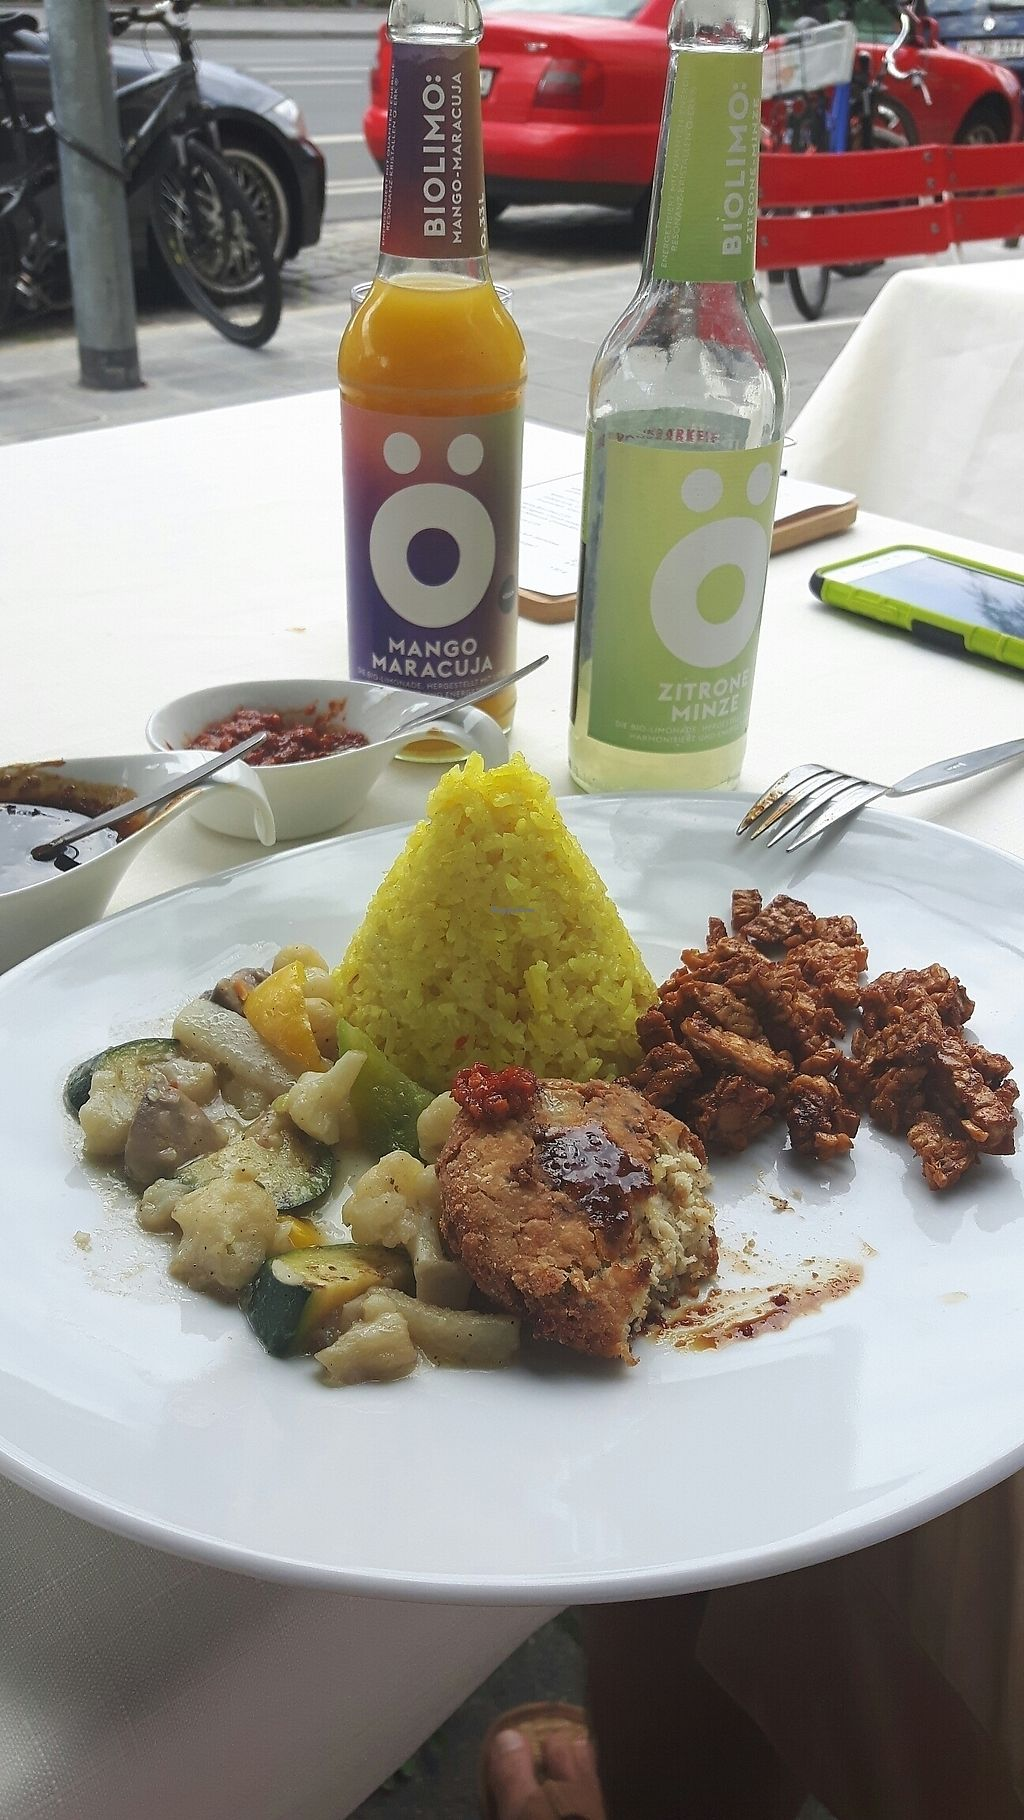 """Photo of Sojahaus Setia  by <a href=""""/members/profile/rawmelody"""">rawmelody</a> <br/>sooo tasty! lecker lecker <br/> July 8, 2017  - <a href='/contact/abuse/image/92667/277857'>Report</a>"""